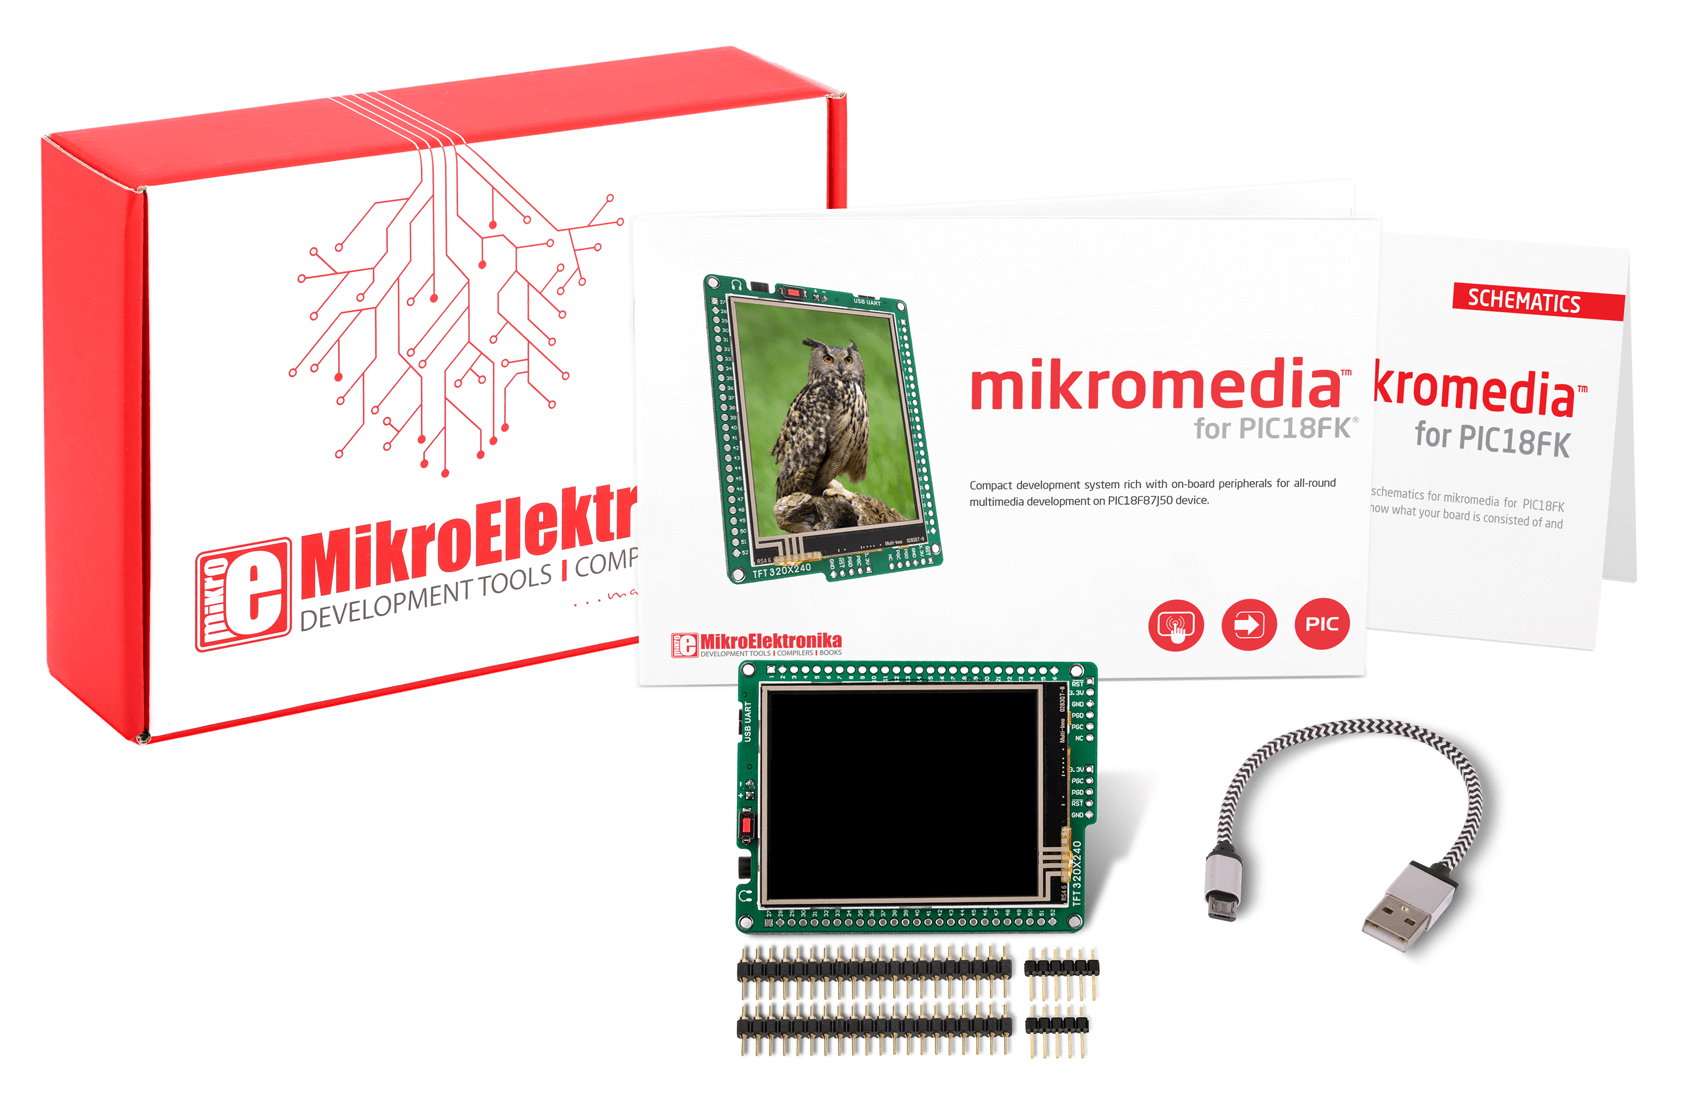 mikromedia for PIC18FK what is in box